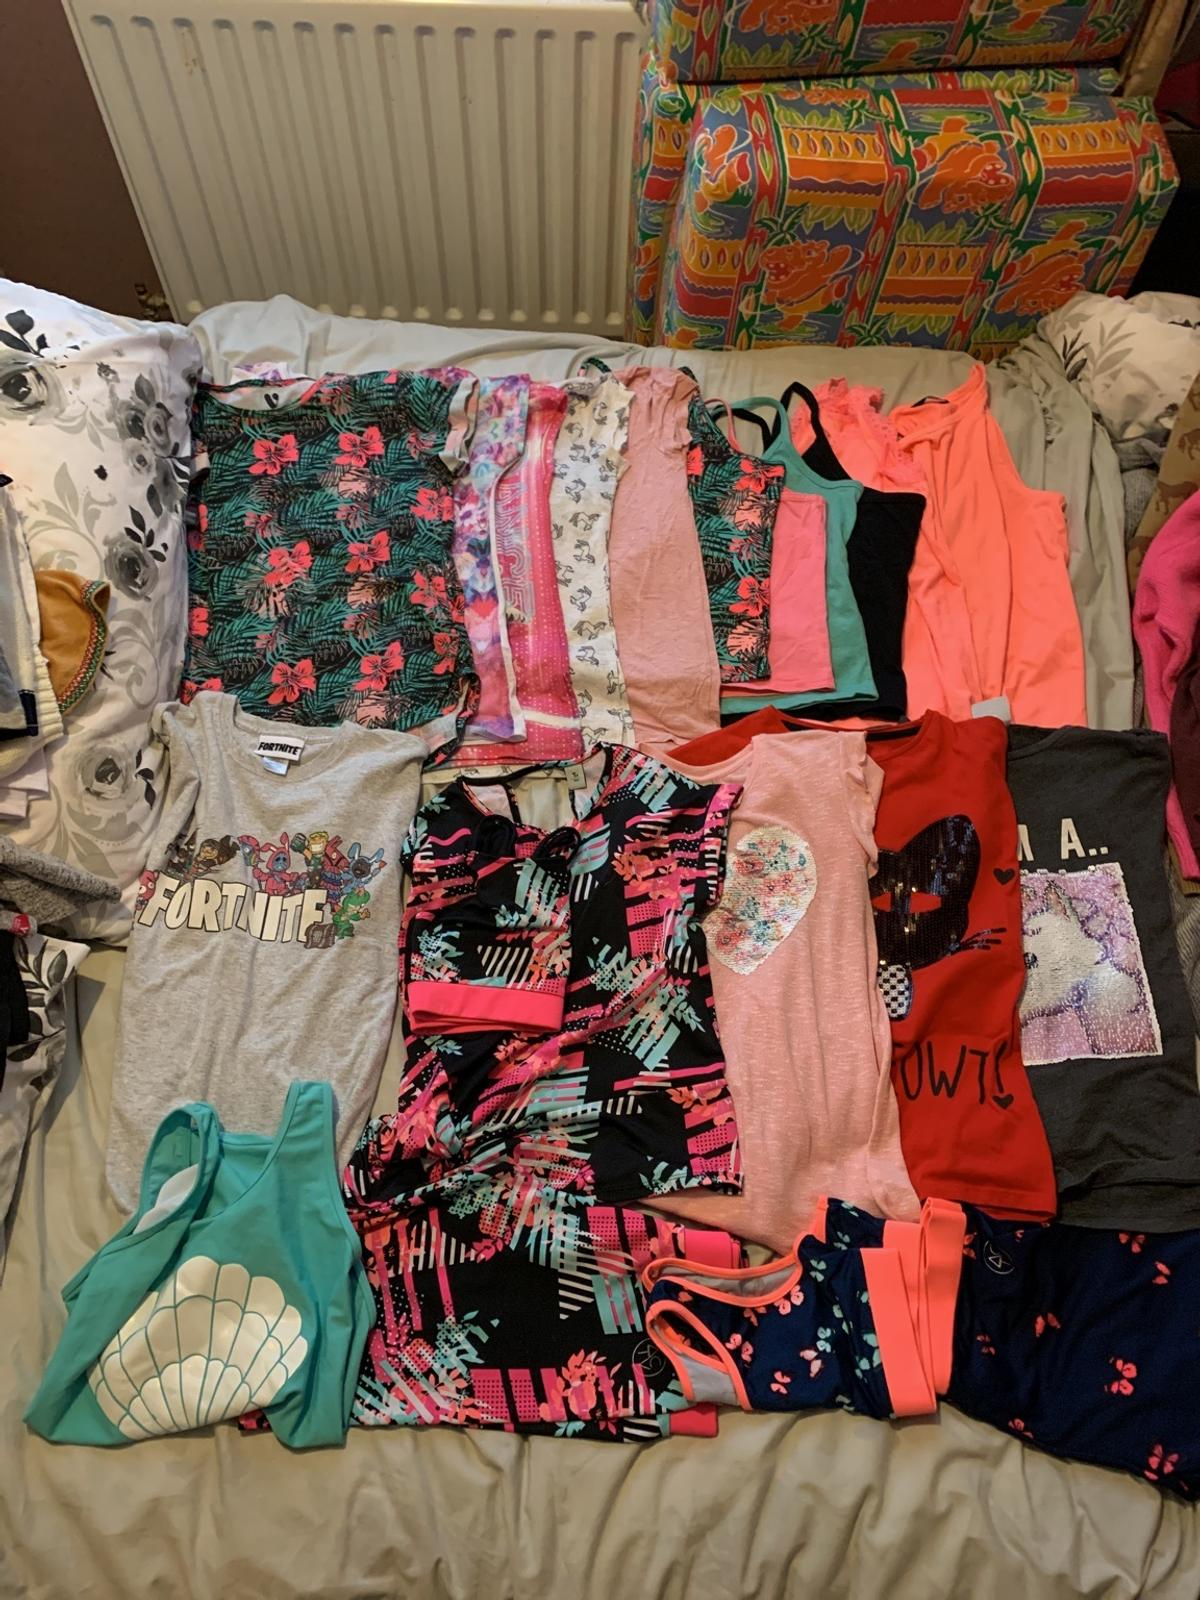 Girls clothes bundle in good condition includes 2x dresses, 4x jumpsuits, 10x t-shirts, 6x vest tops and more, over 40 items of clothing  UPDATE just found more clothes including 3x jeggings 3x denim shorts, 6x PJ's, 2x swimsuits and more Now more than 60 items of clothing